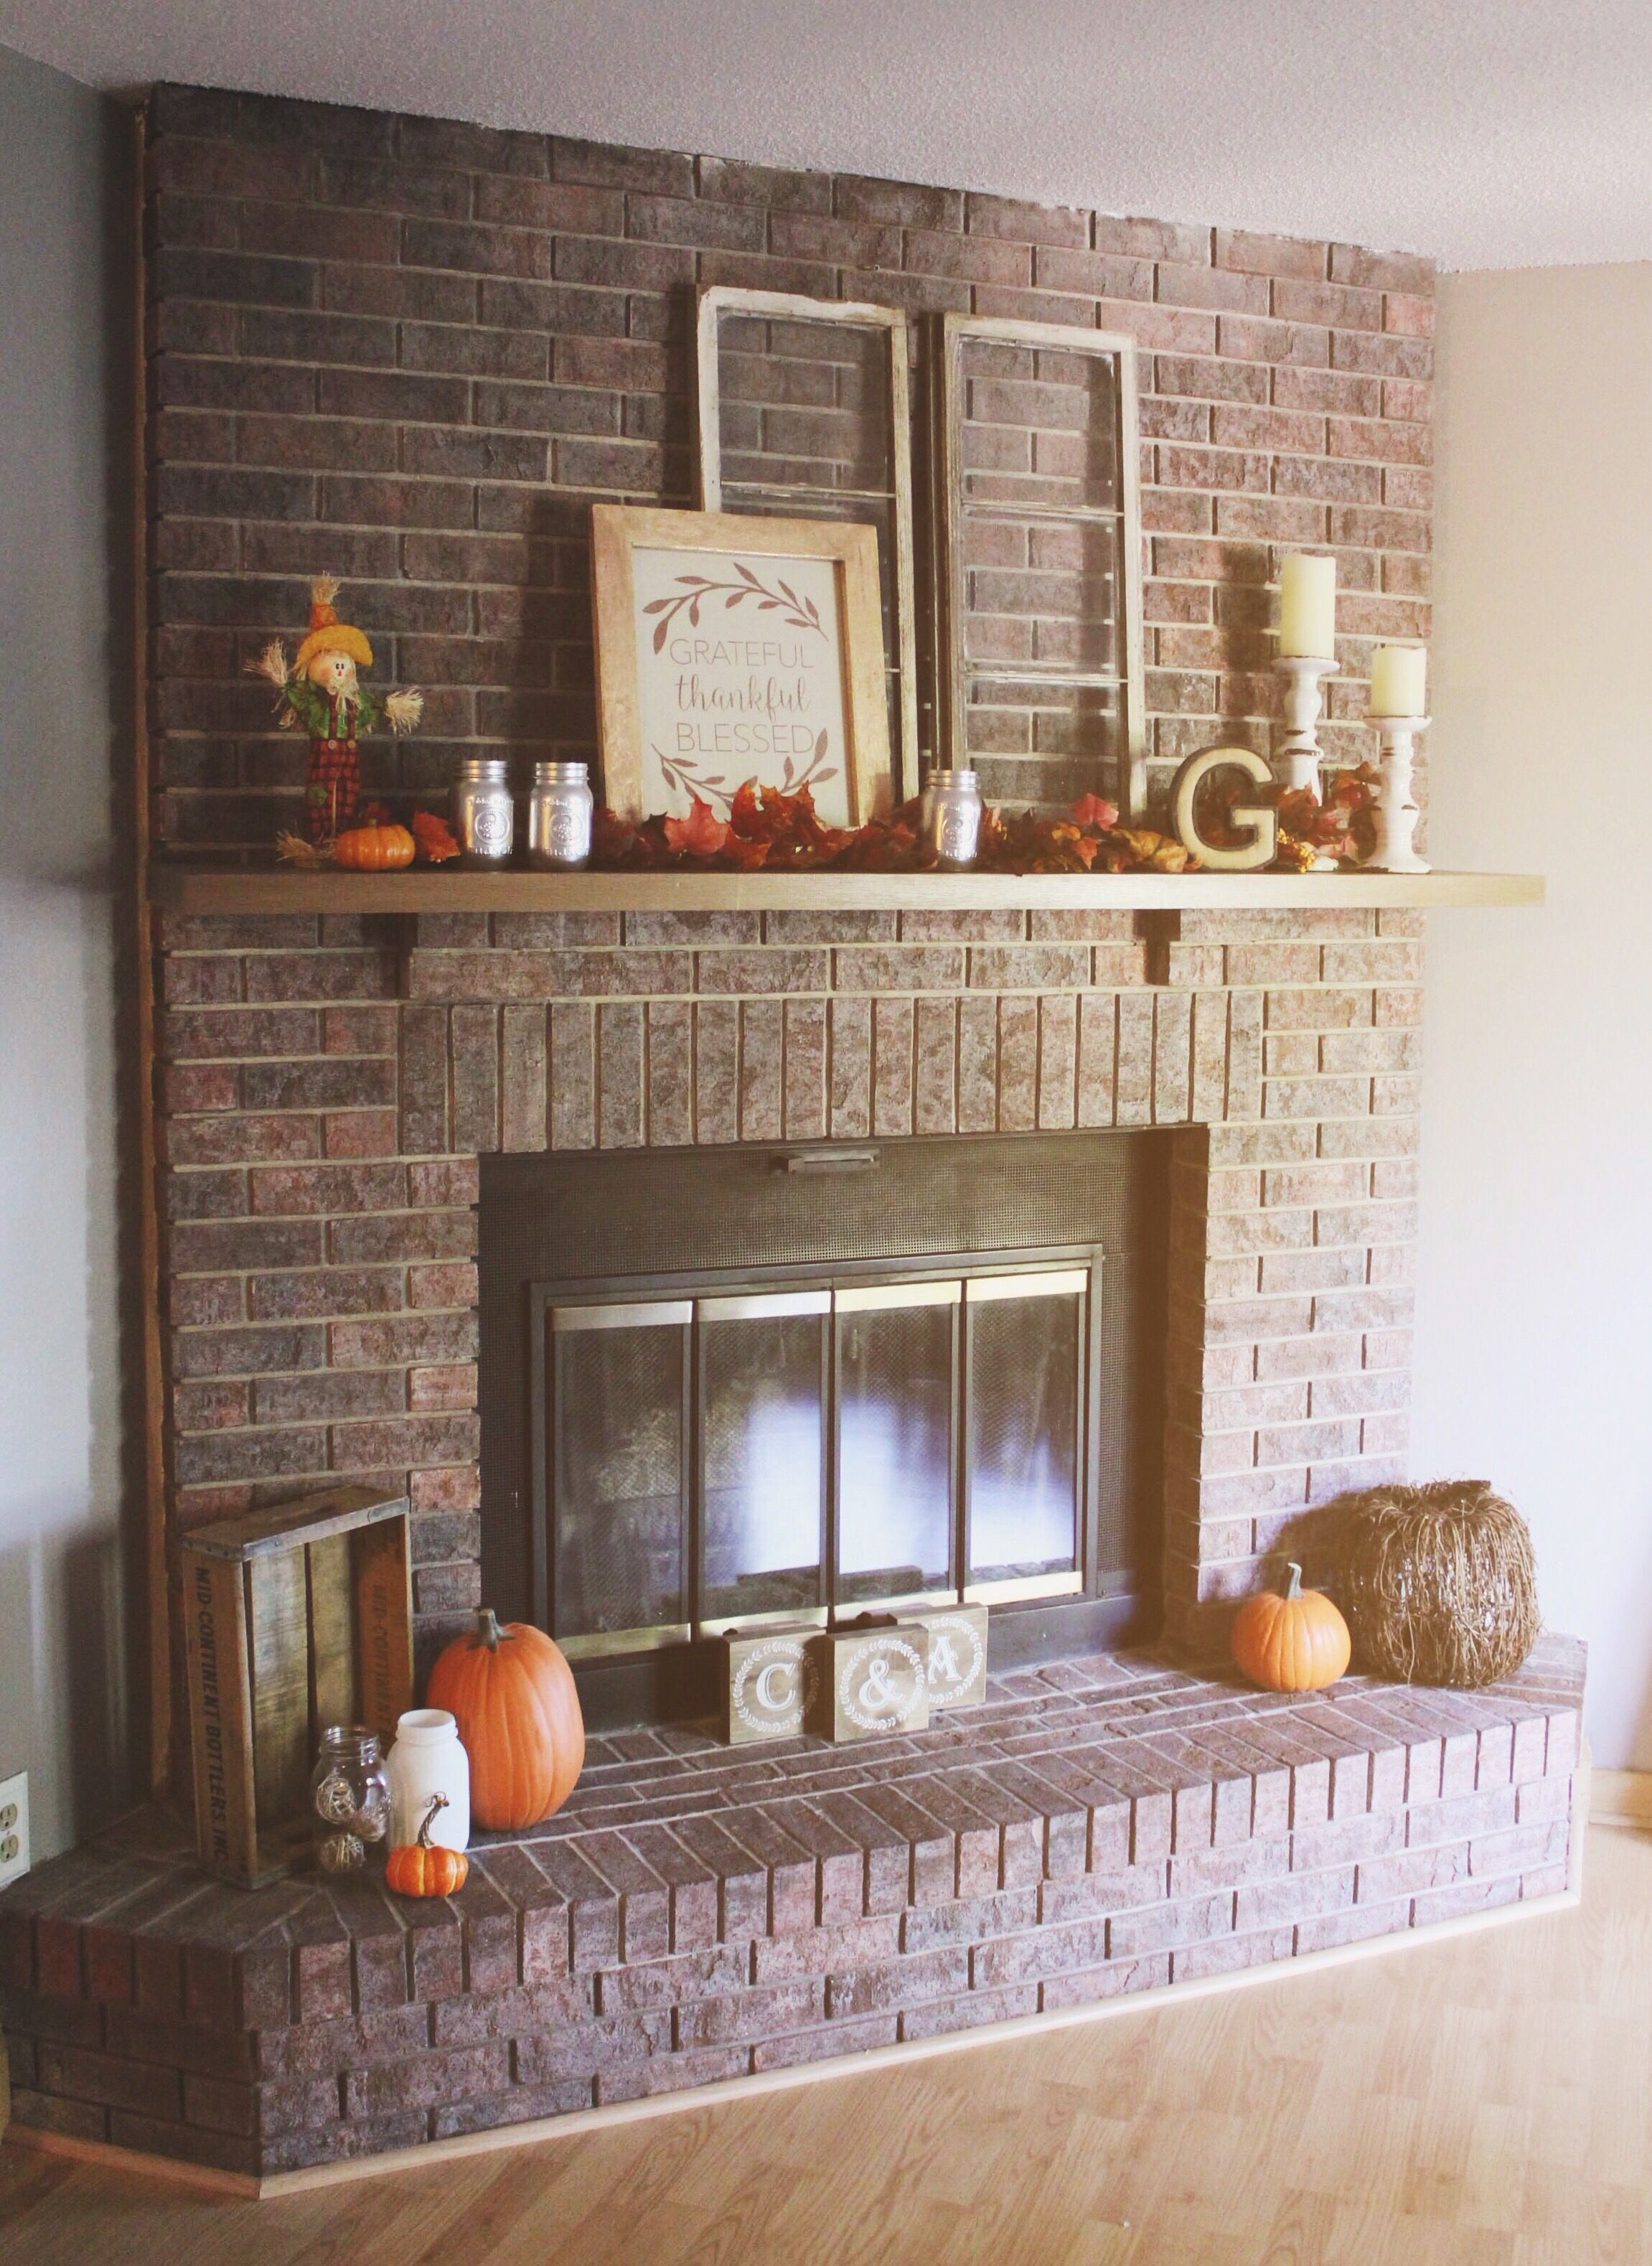 Our cozy rustic chic fall red brick fireplace mantel decor for Decor over fireplace